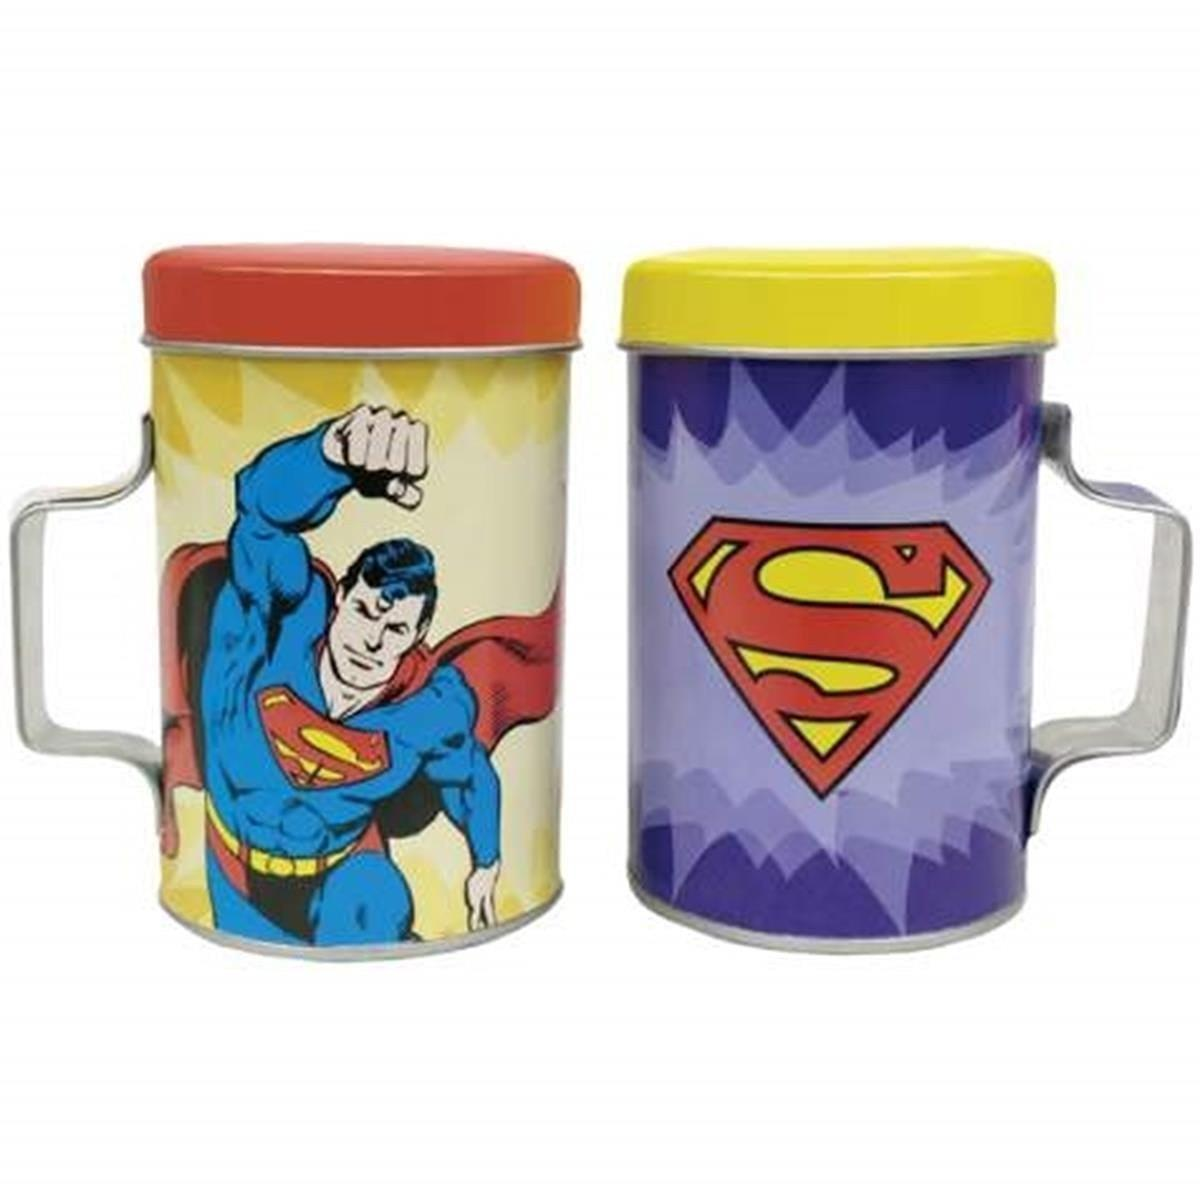 Superman Tin Salt Shakers